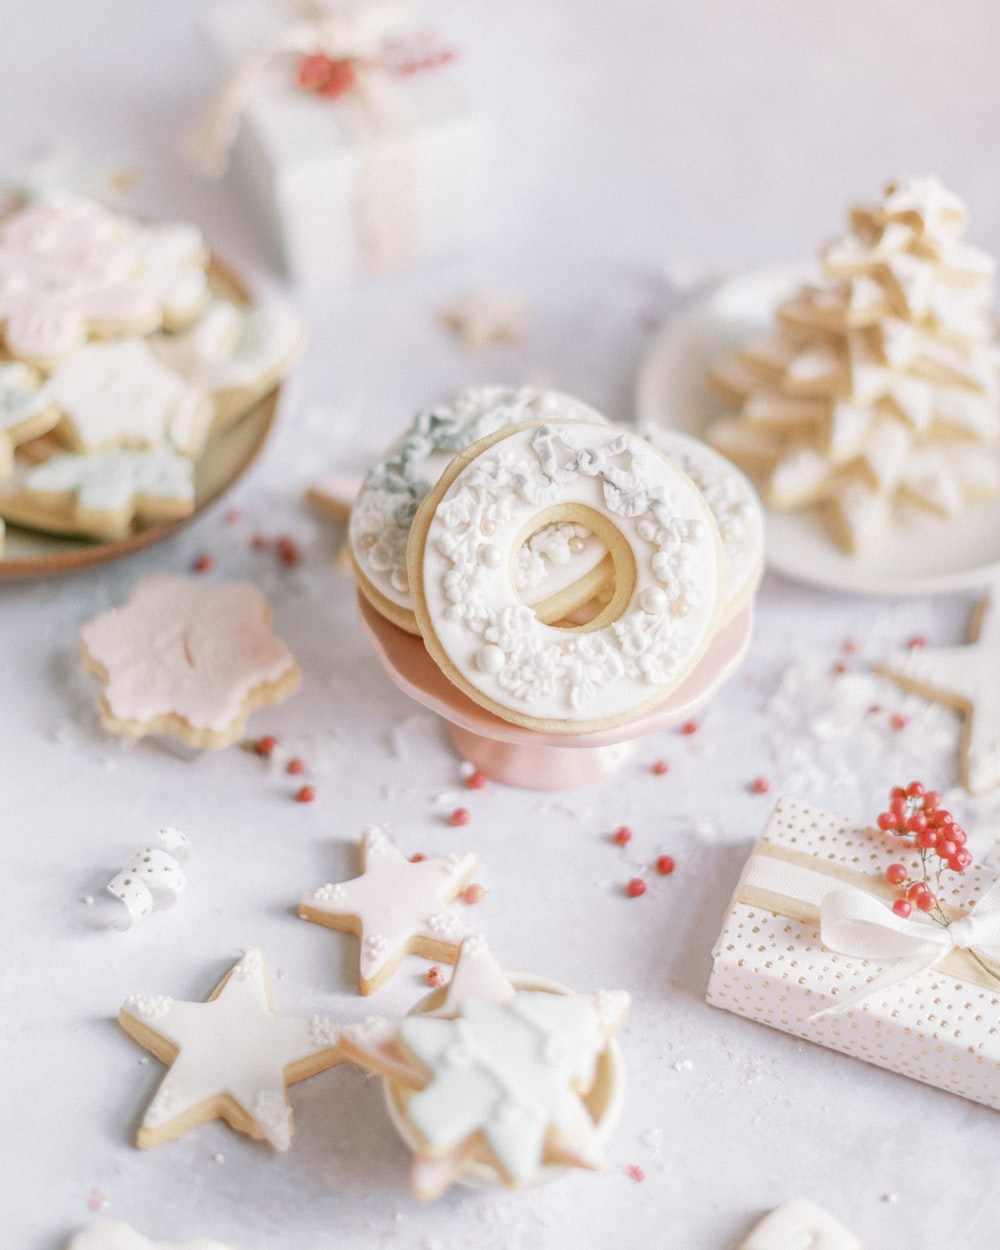 white and gold round frosted ornament cookies